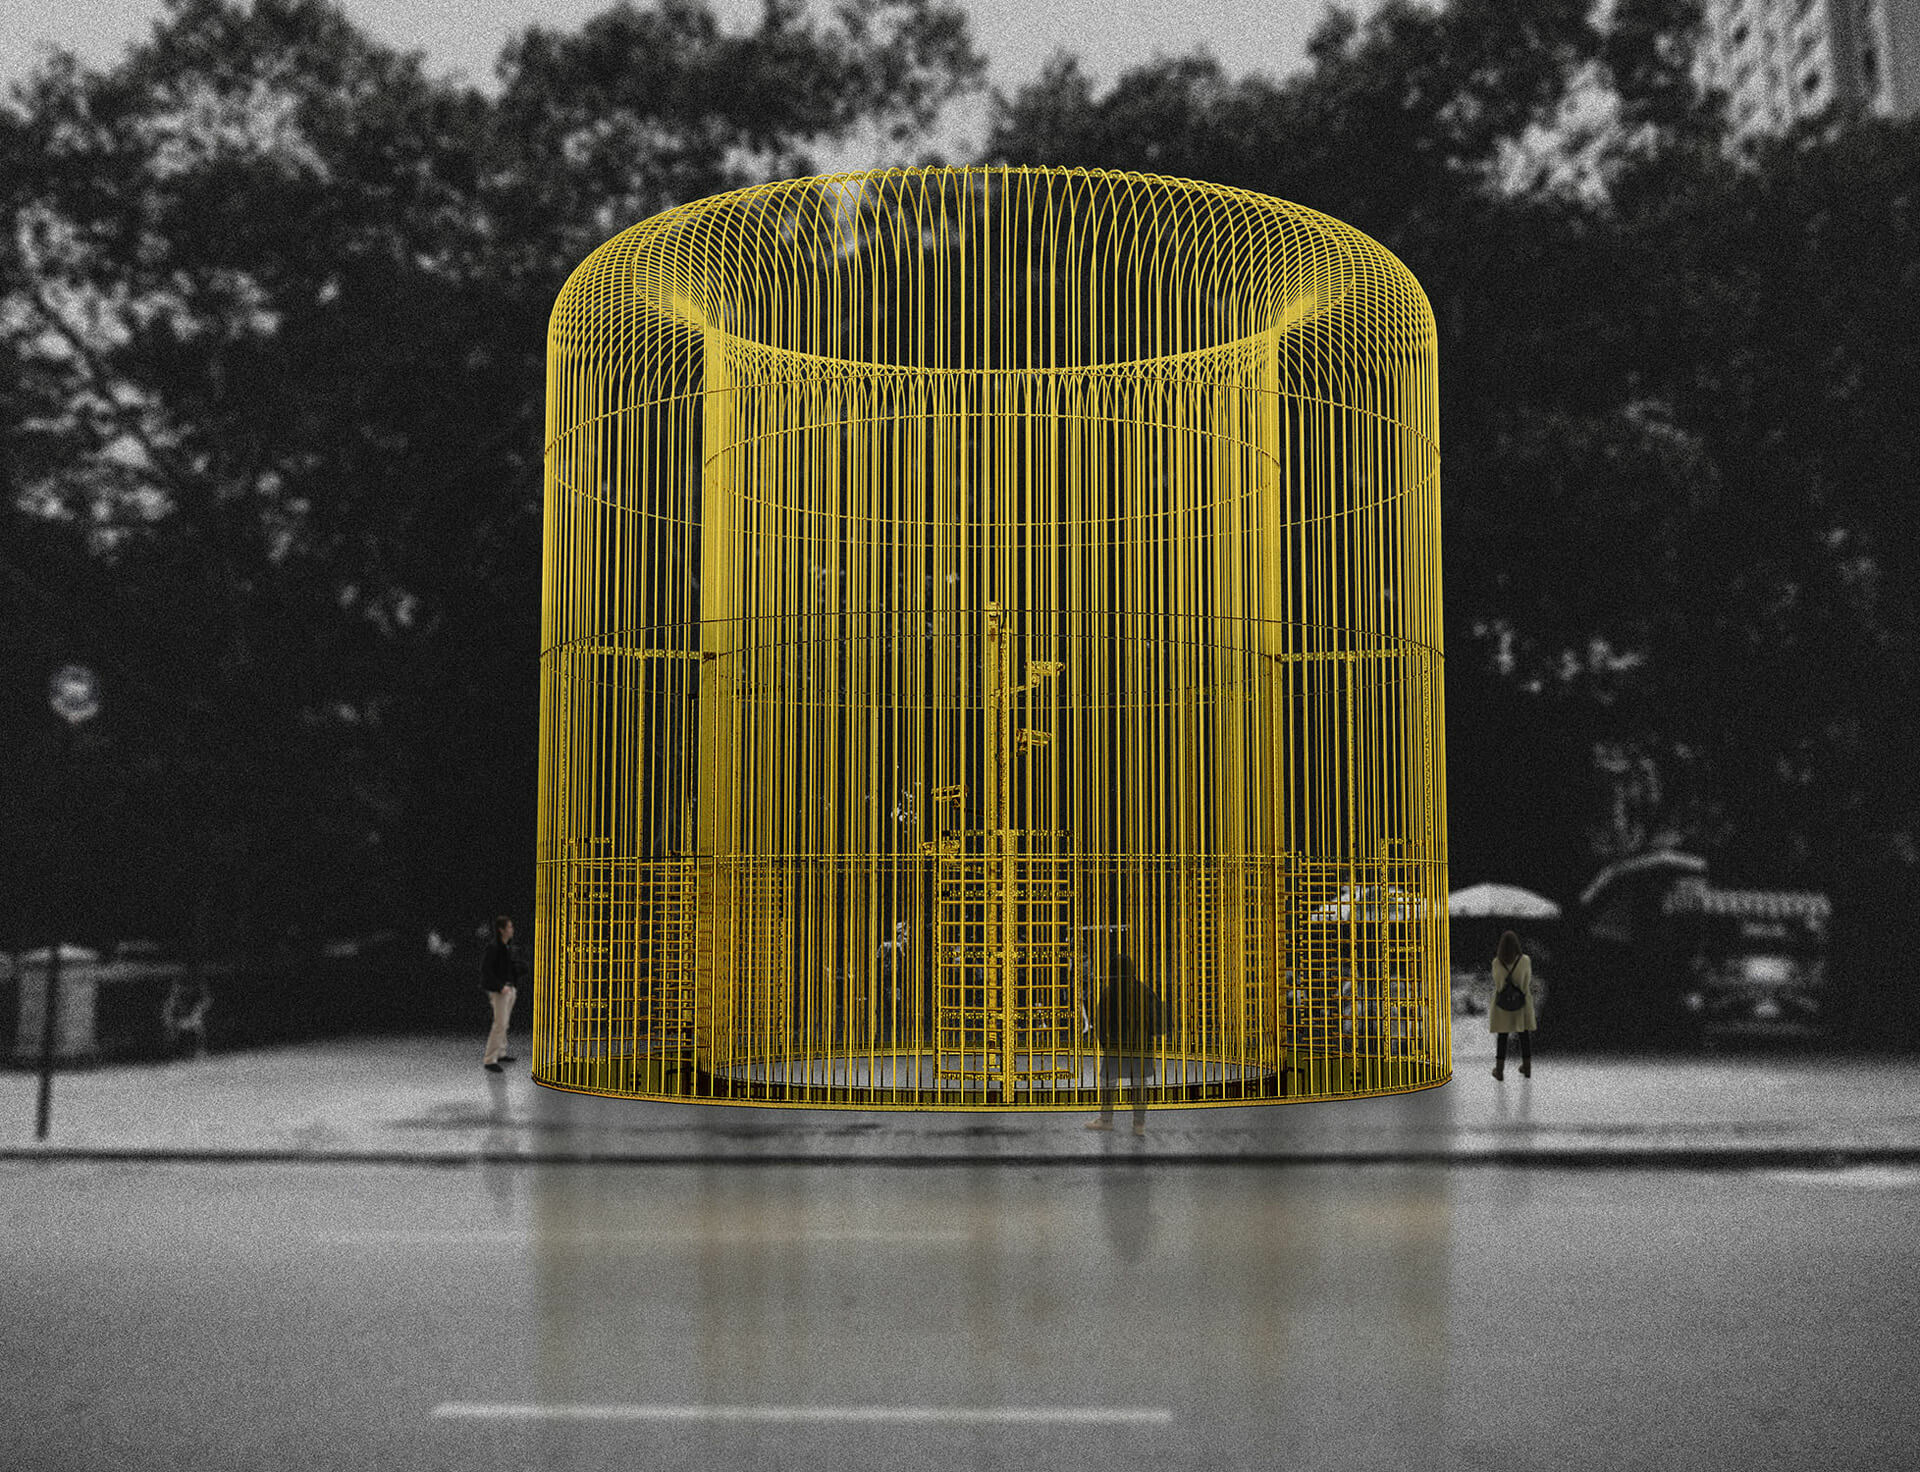 Ai Weiwei to open multi-borough exhibition in New York City in October 2017